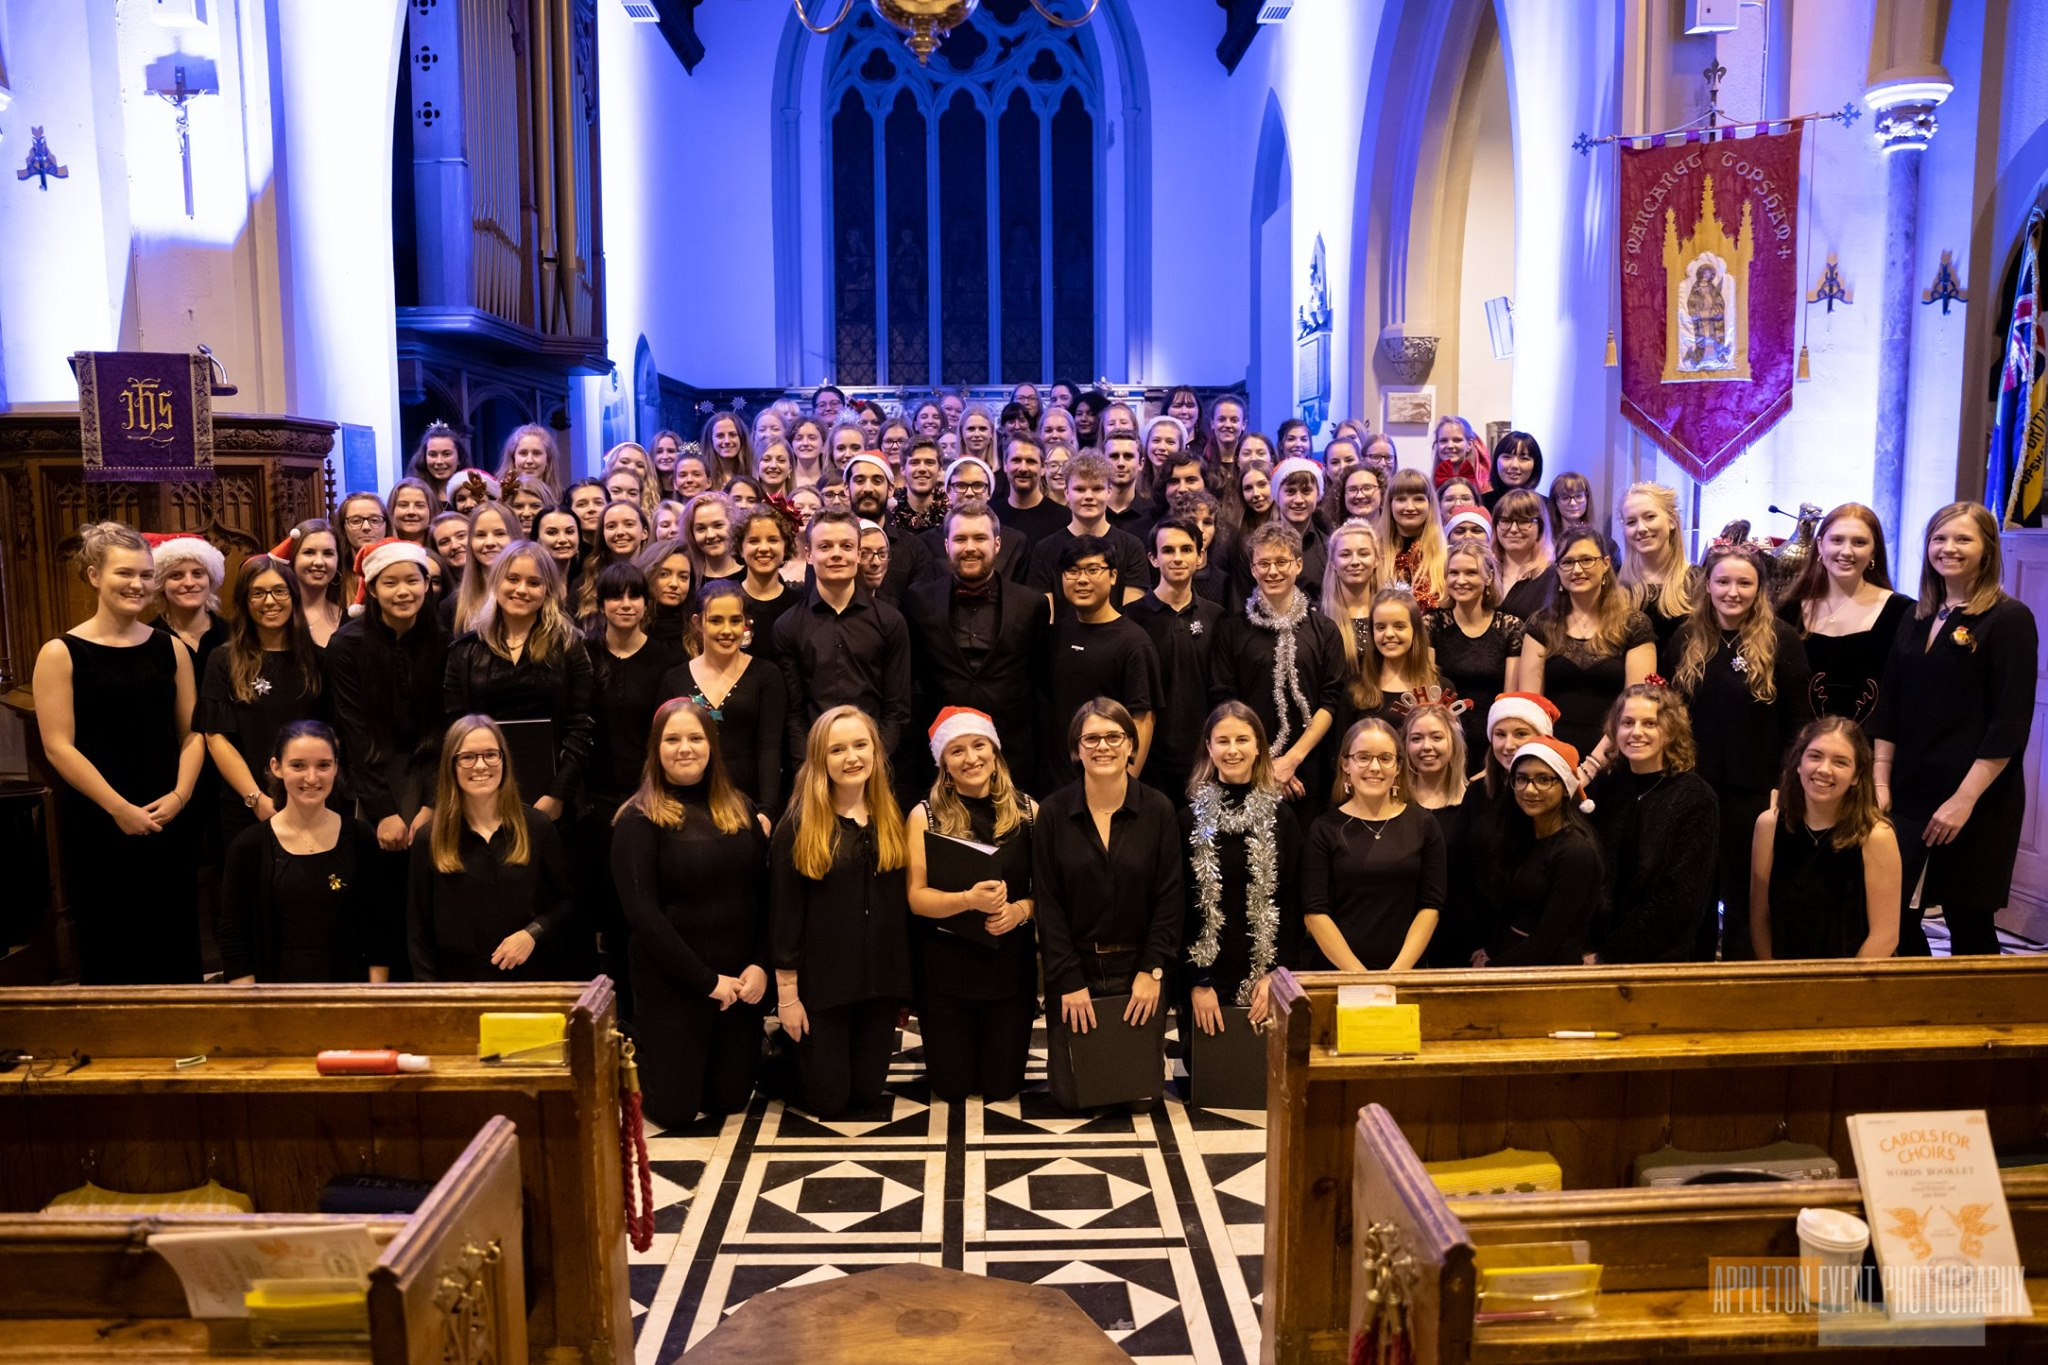 A large choir smiling at the camera and assembled in a church for a Christmas concert